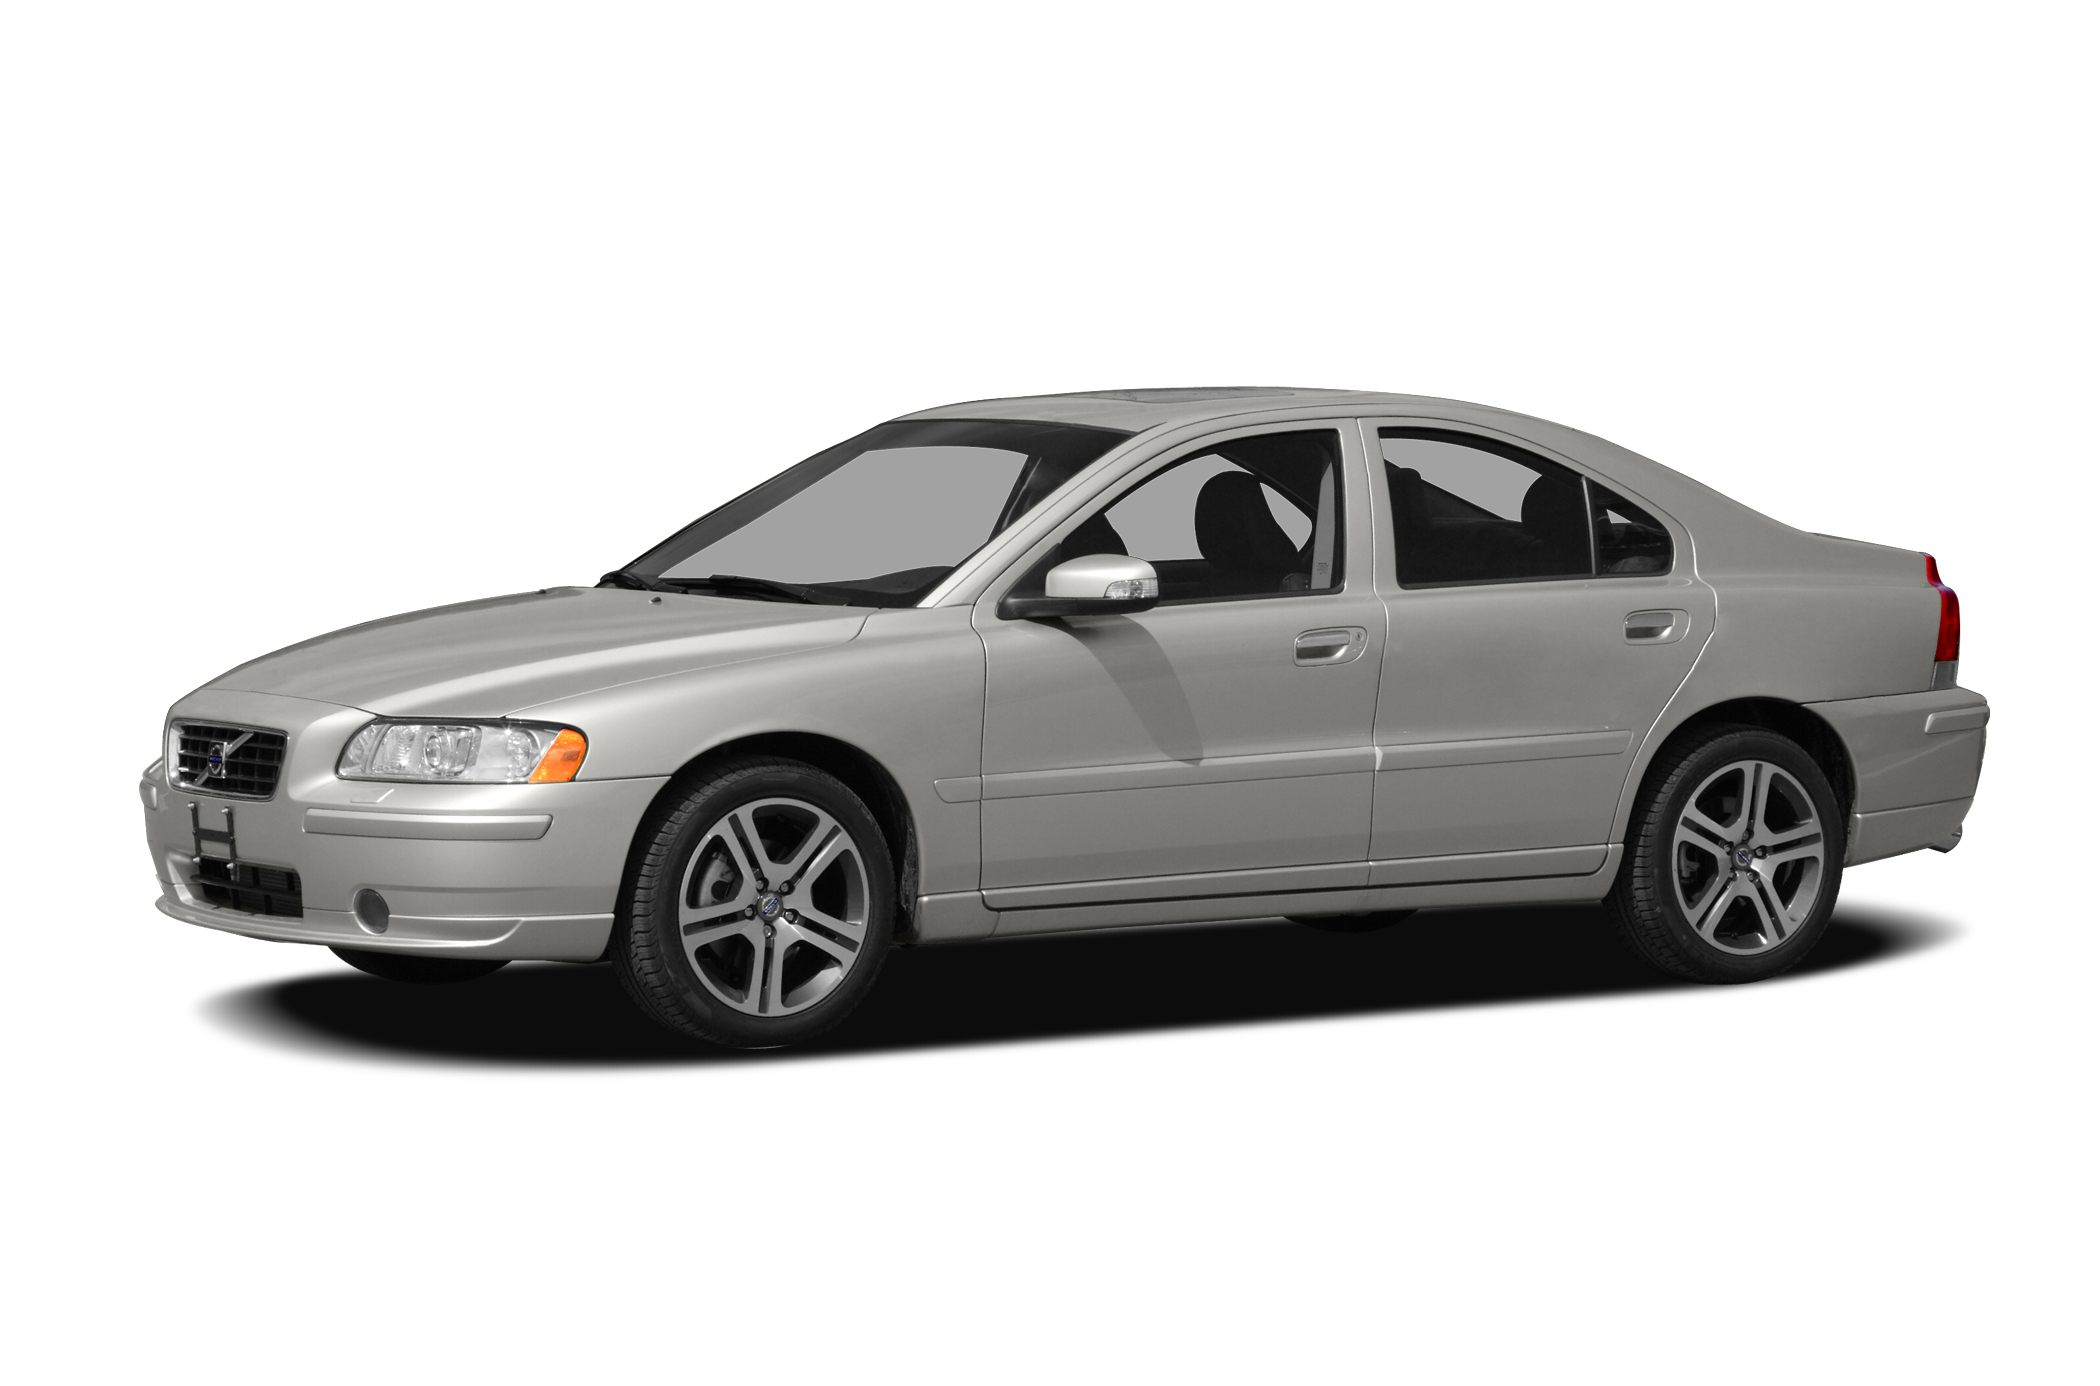 Volvo S60: Speed dial